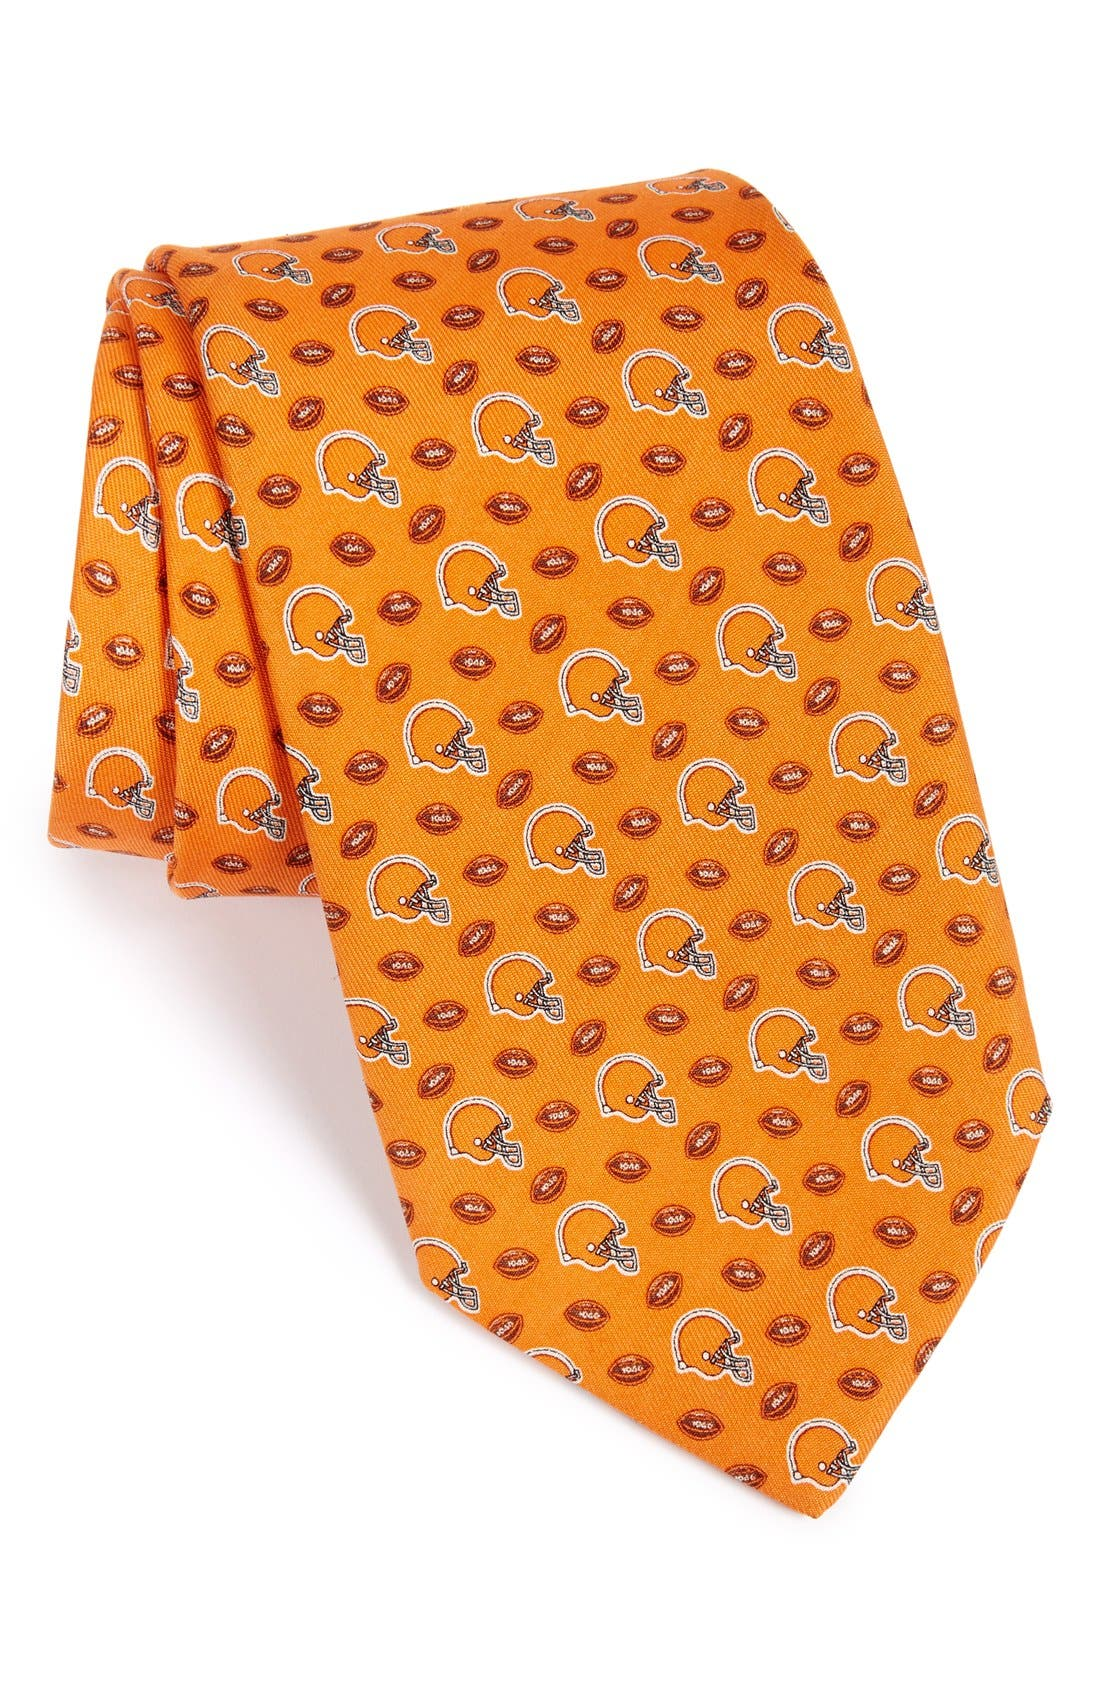 Cleveland Browns - NFL Woven Silk Tie,                         Main,                         color, 800